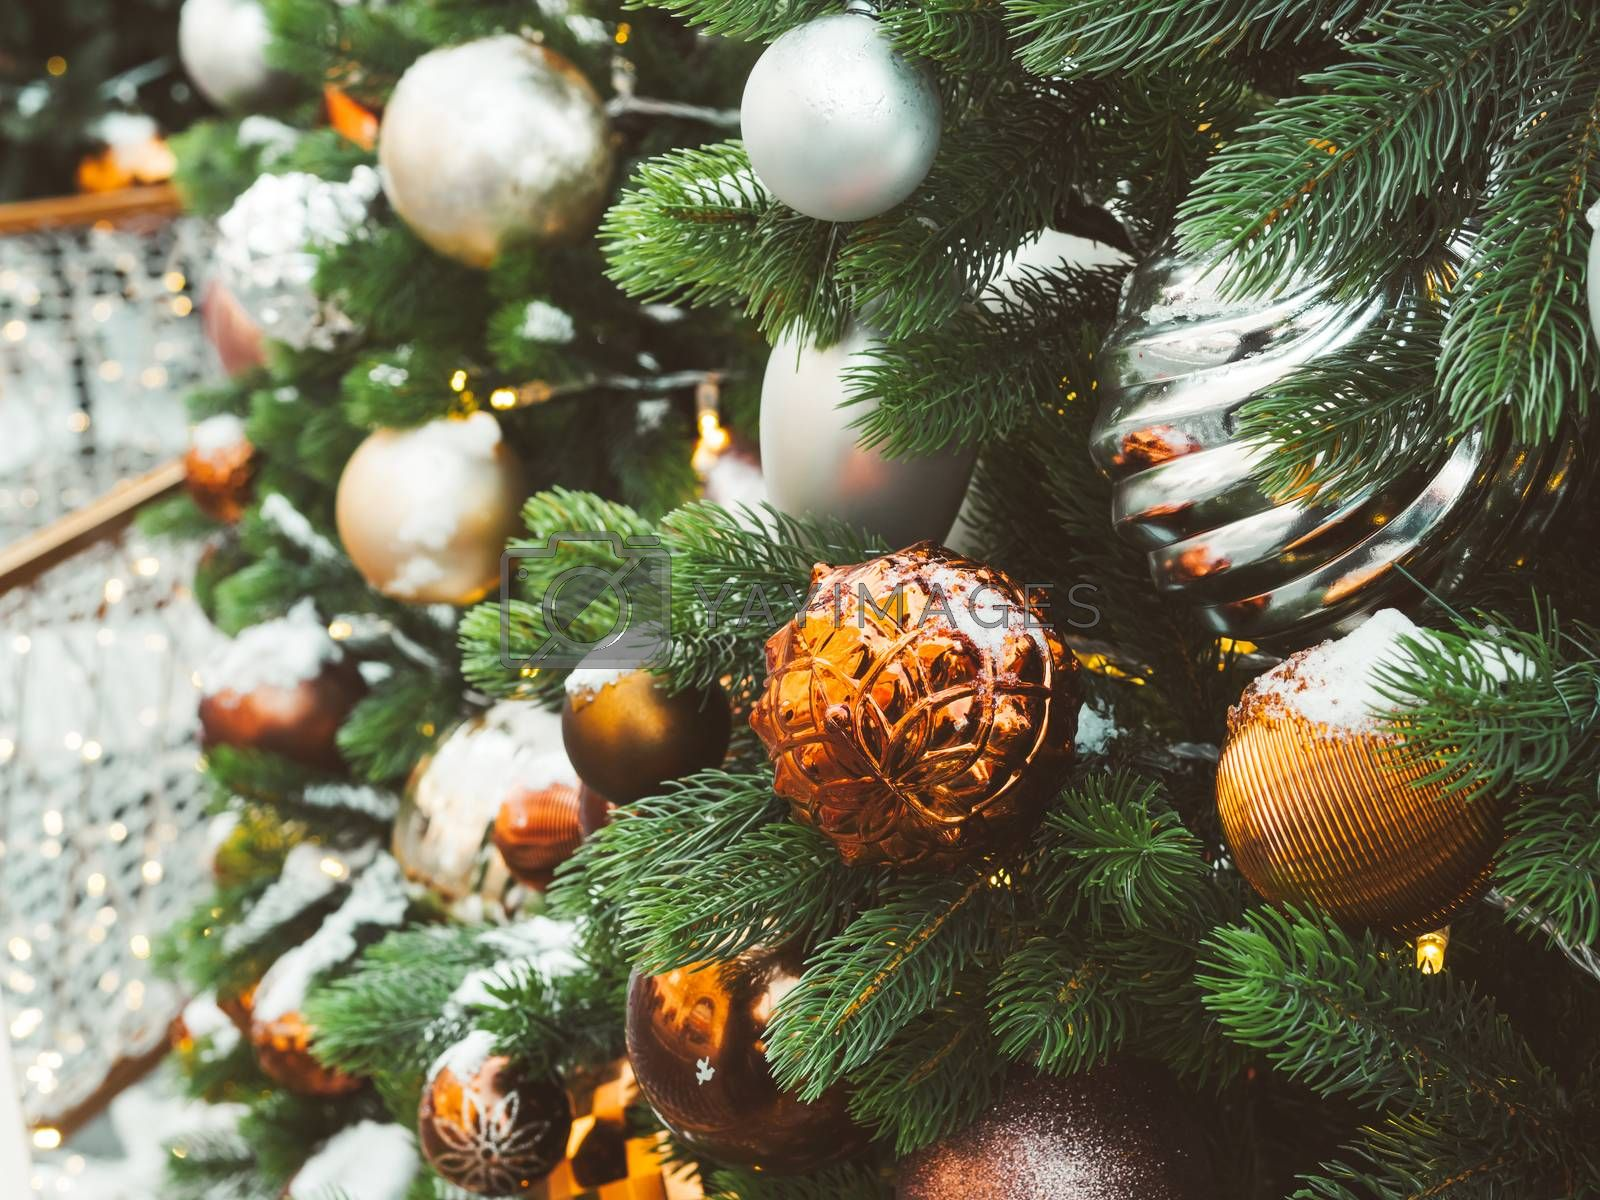 Christmas tree with silver and bronze balls. Outdoor decorations for New Year celebration.